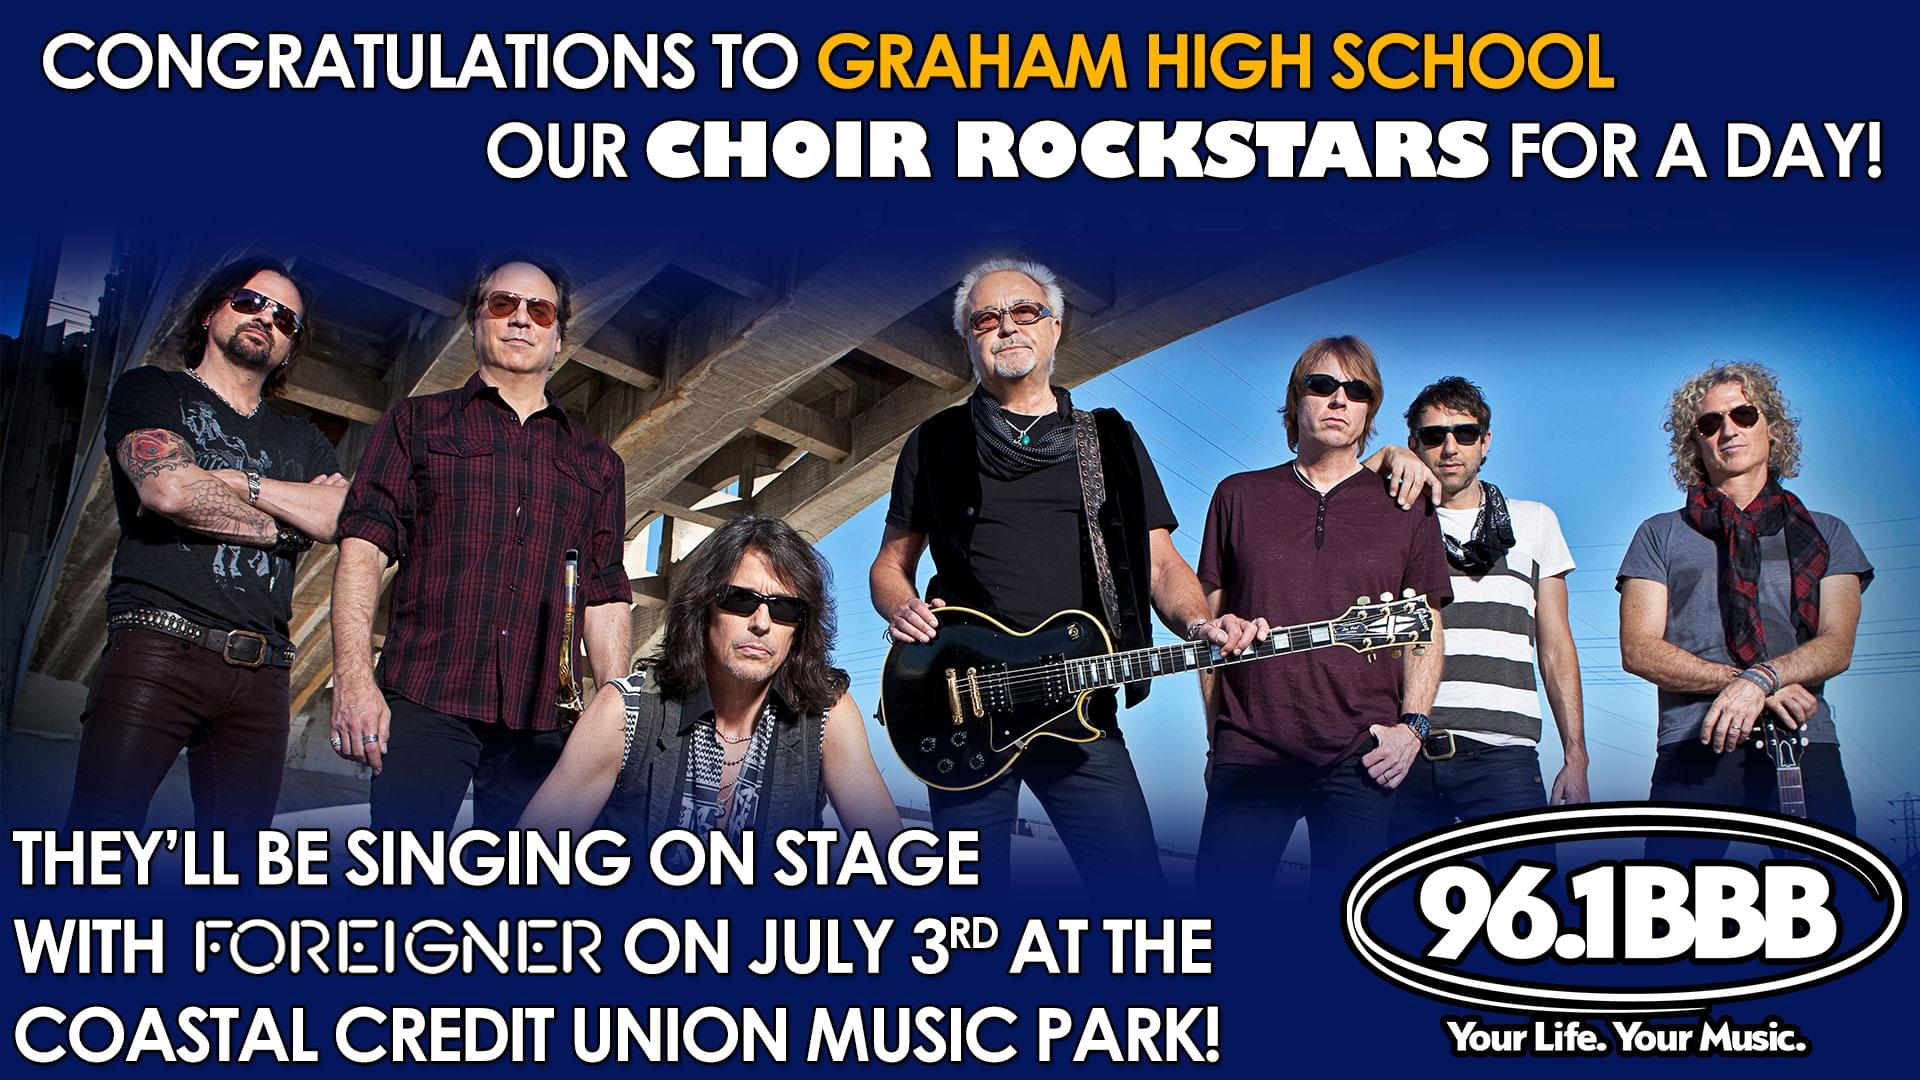 Congrats to Graham High School our Choir Rockstars for a Day!